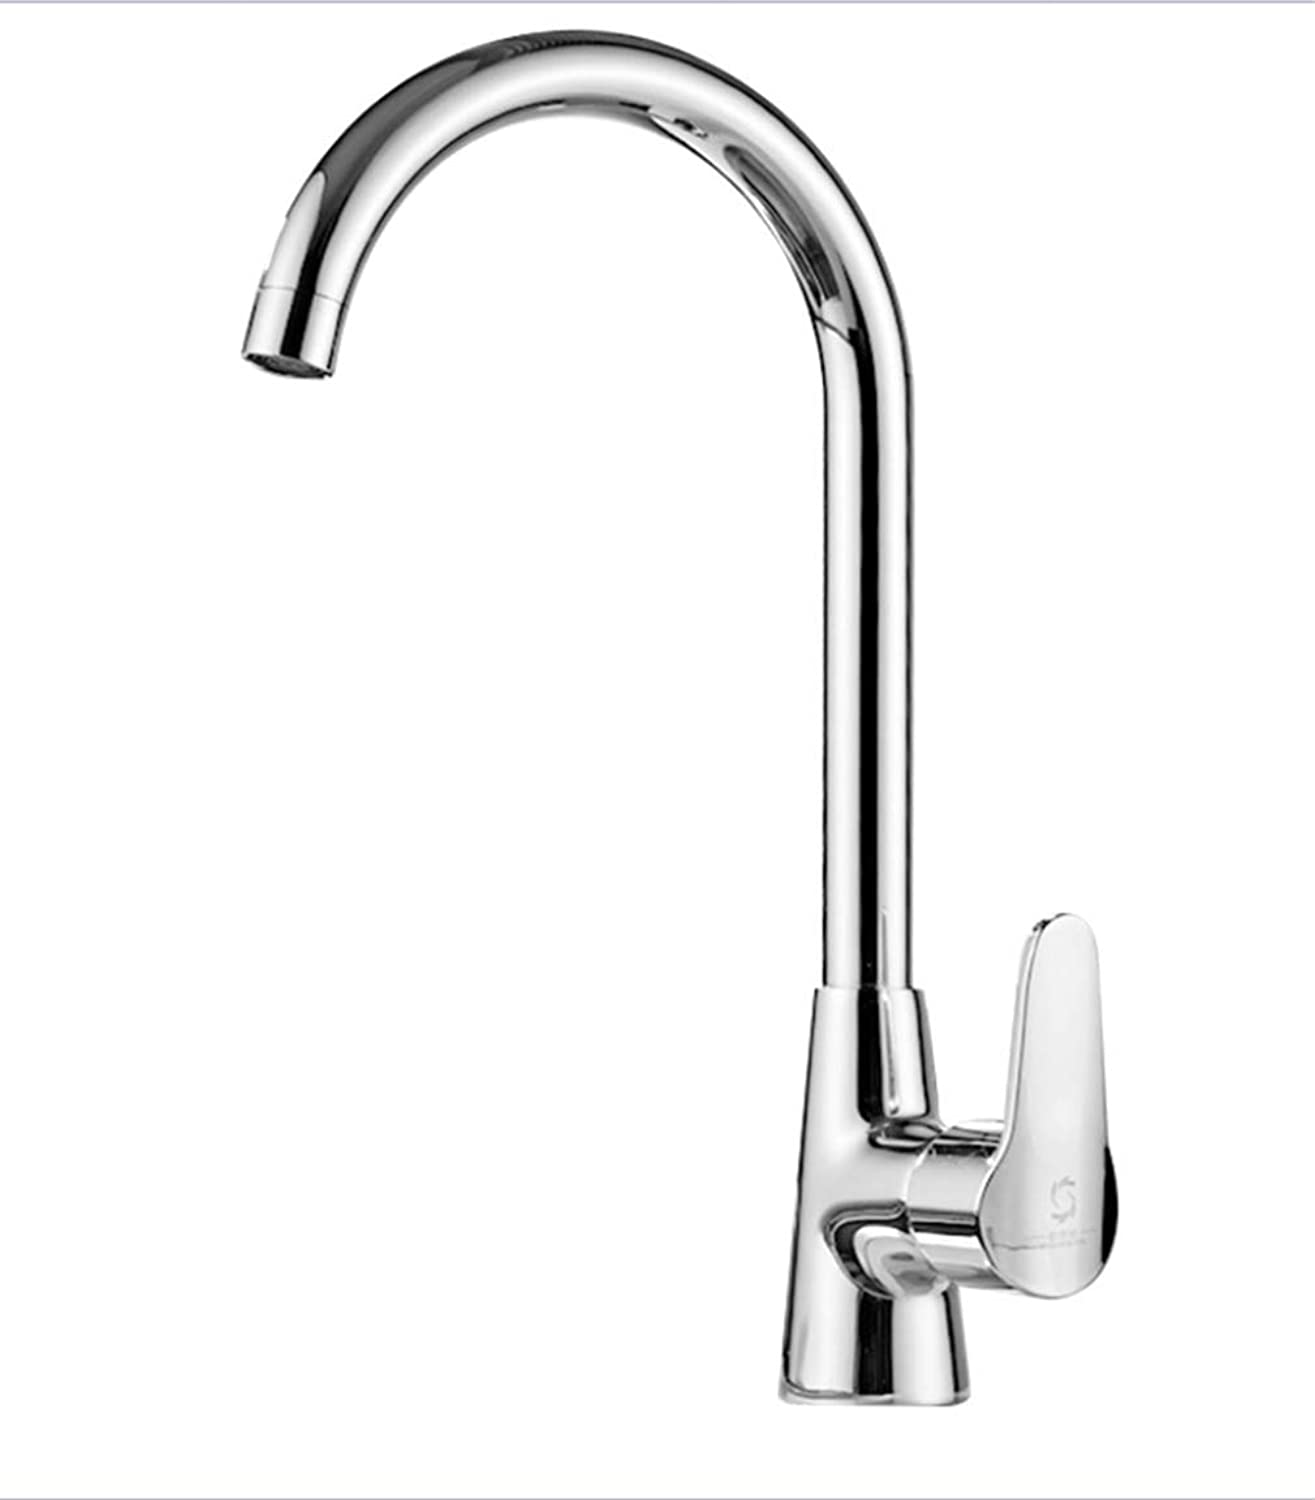 Faucet Mone Spout Basincool and Hot Water Faucet in Kitchen, Copper Dishwasher, Dishwasher, Sink, Water Faucet, Single Cold, Switchable Splash-Proof Faucet